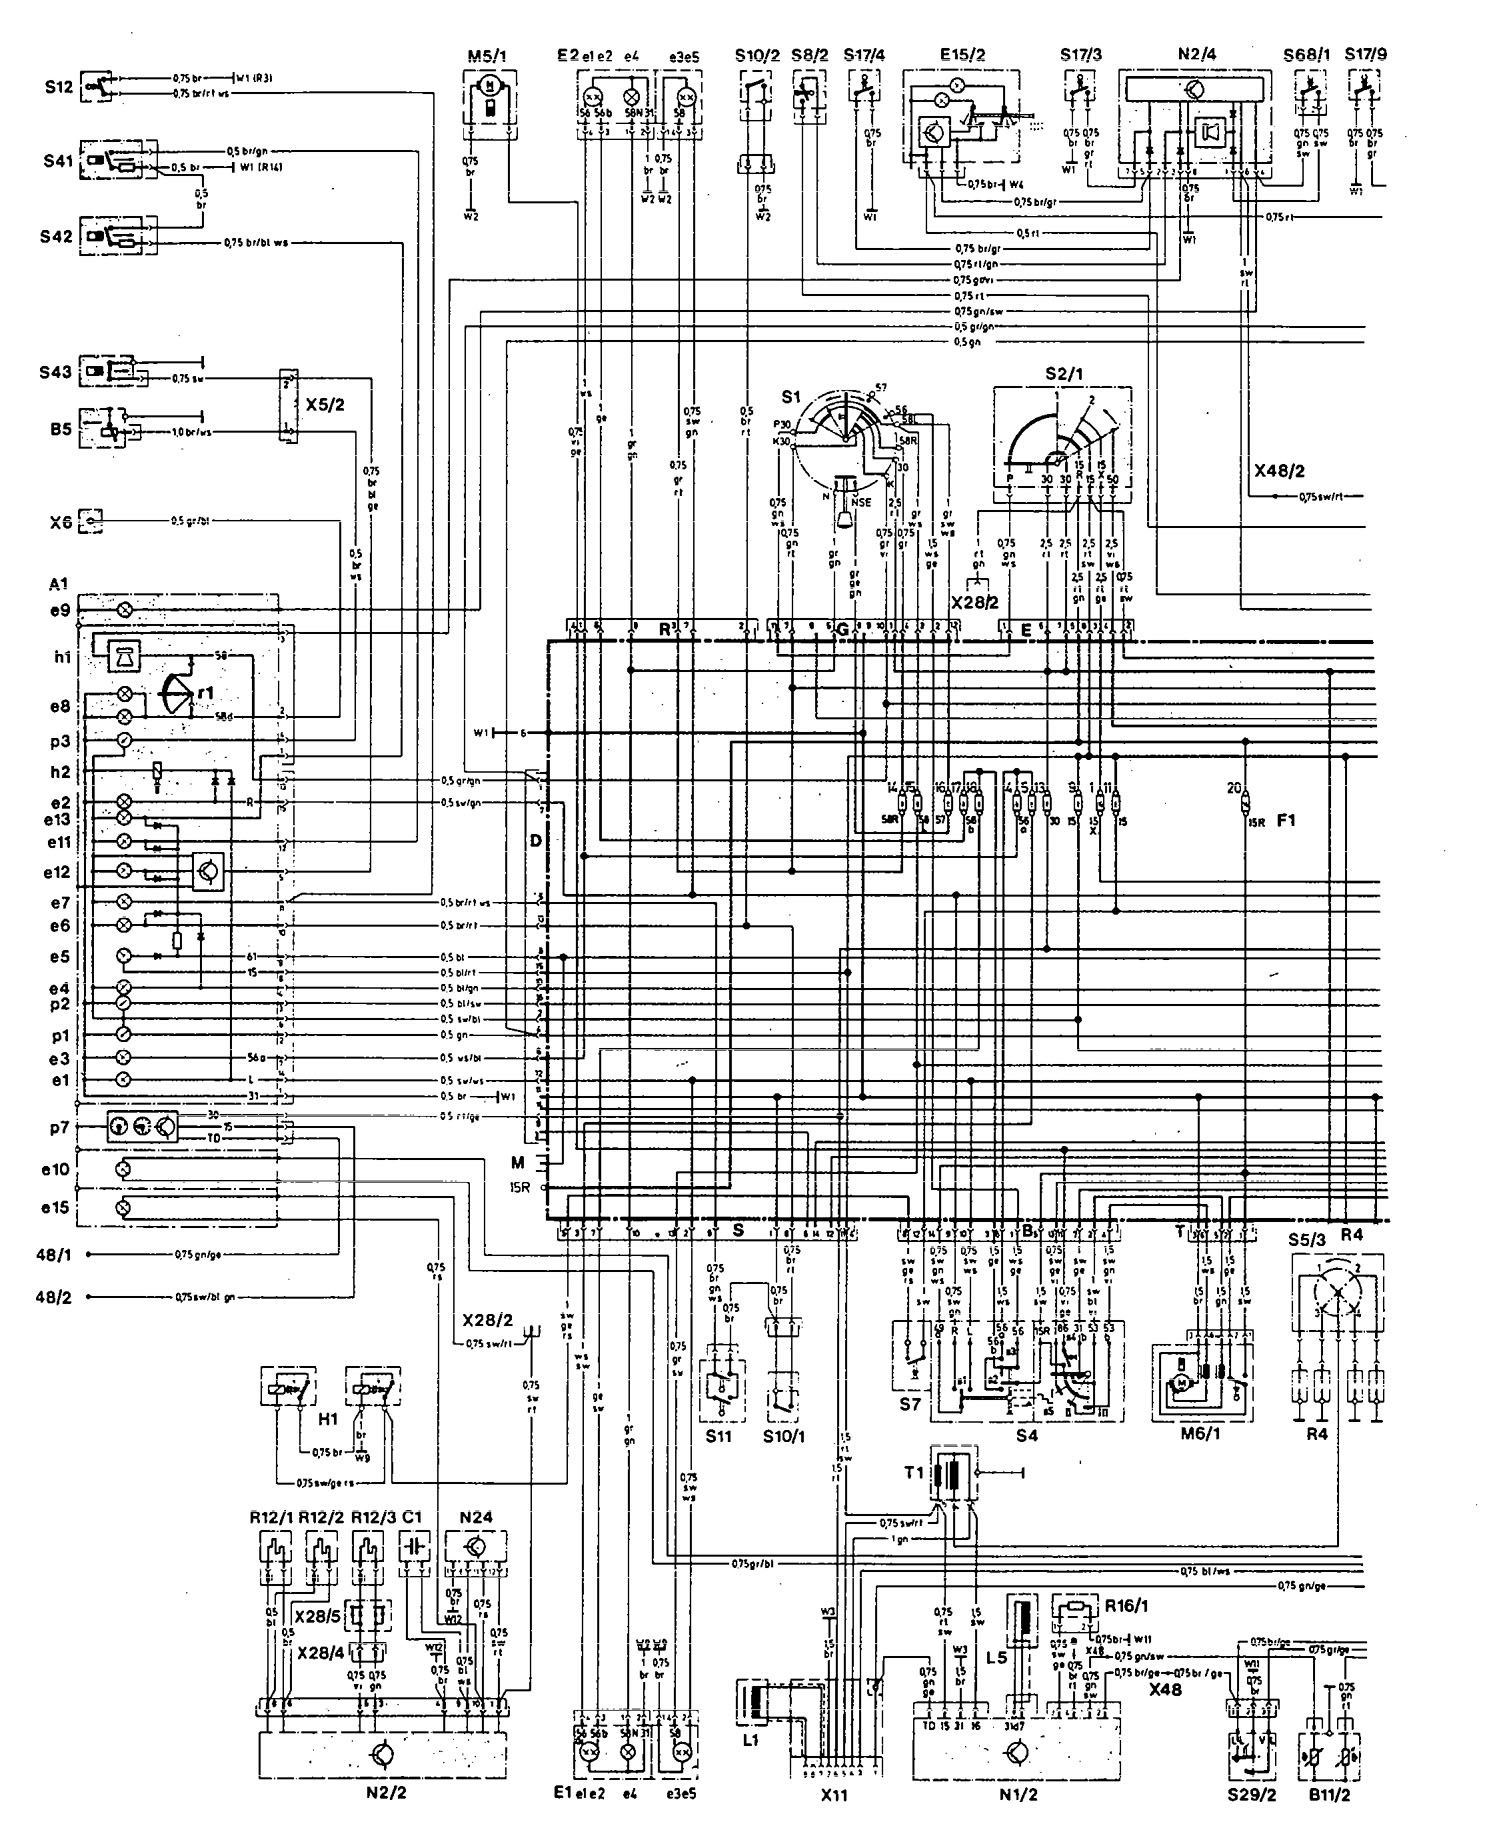 Mercedes 190e 1992 Wiring Diagrams Cooling Fans Carknowledge Fan Diagram